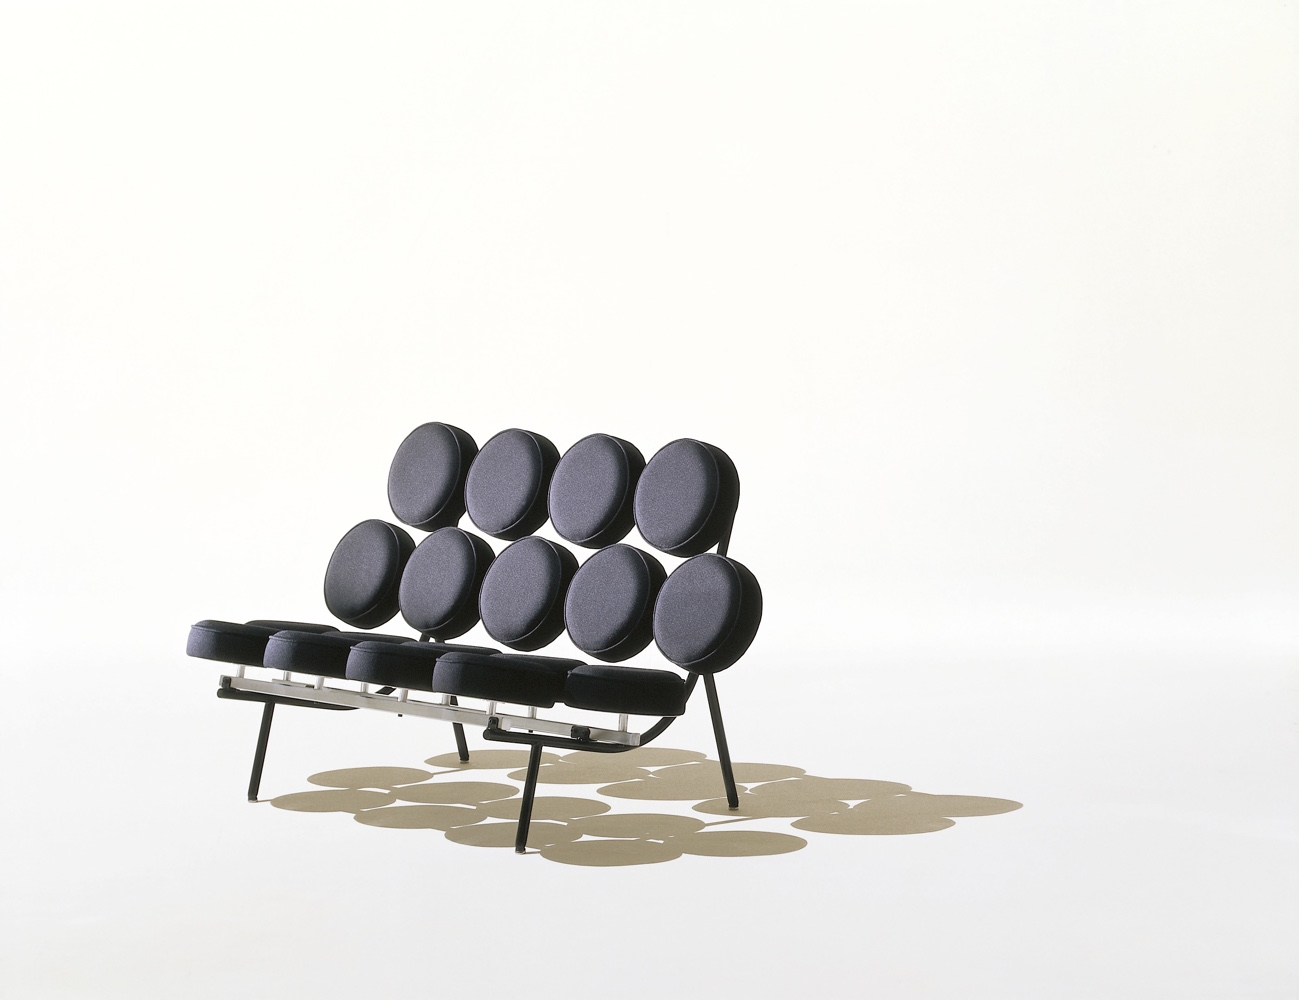 TheNelson Marshmallow sofa, designed in 1956 byGeorge Nelson andand Irving Harper.Image© 2016 Herman Miller, Inc.